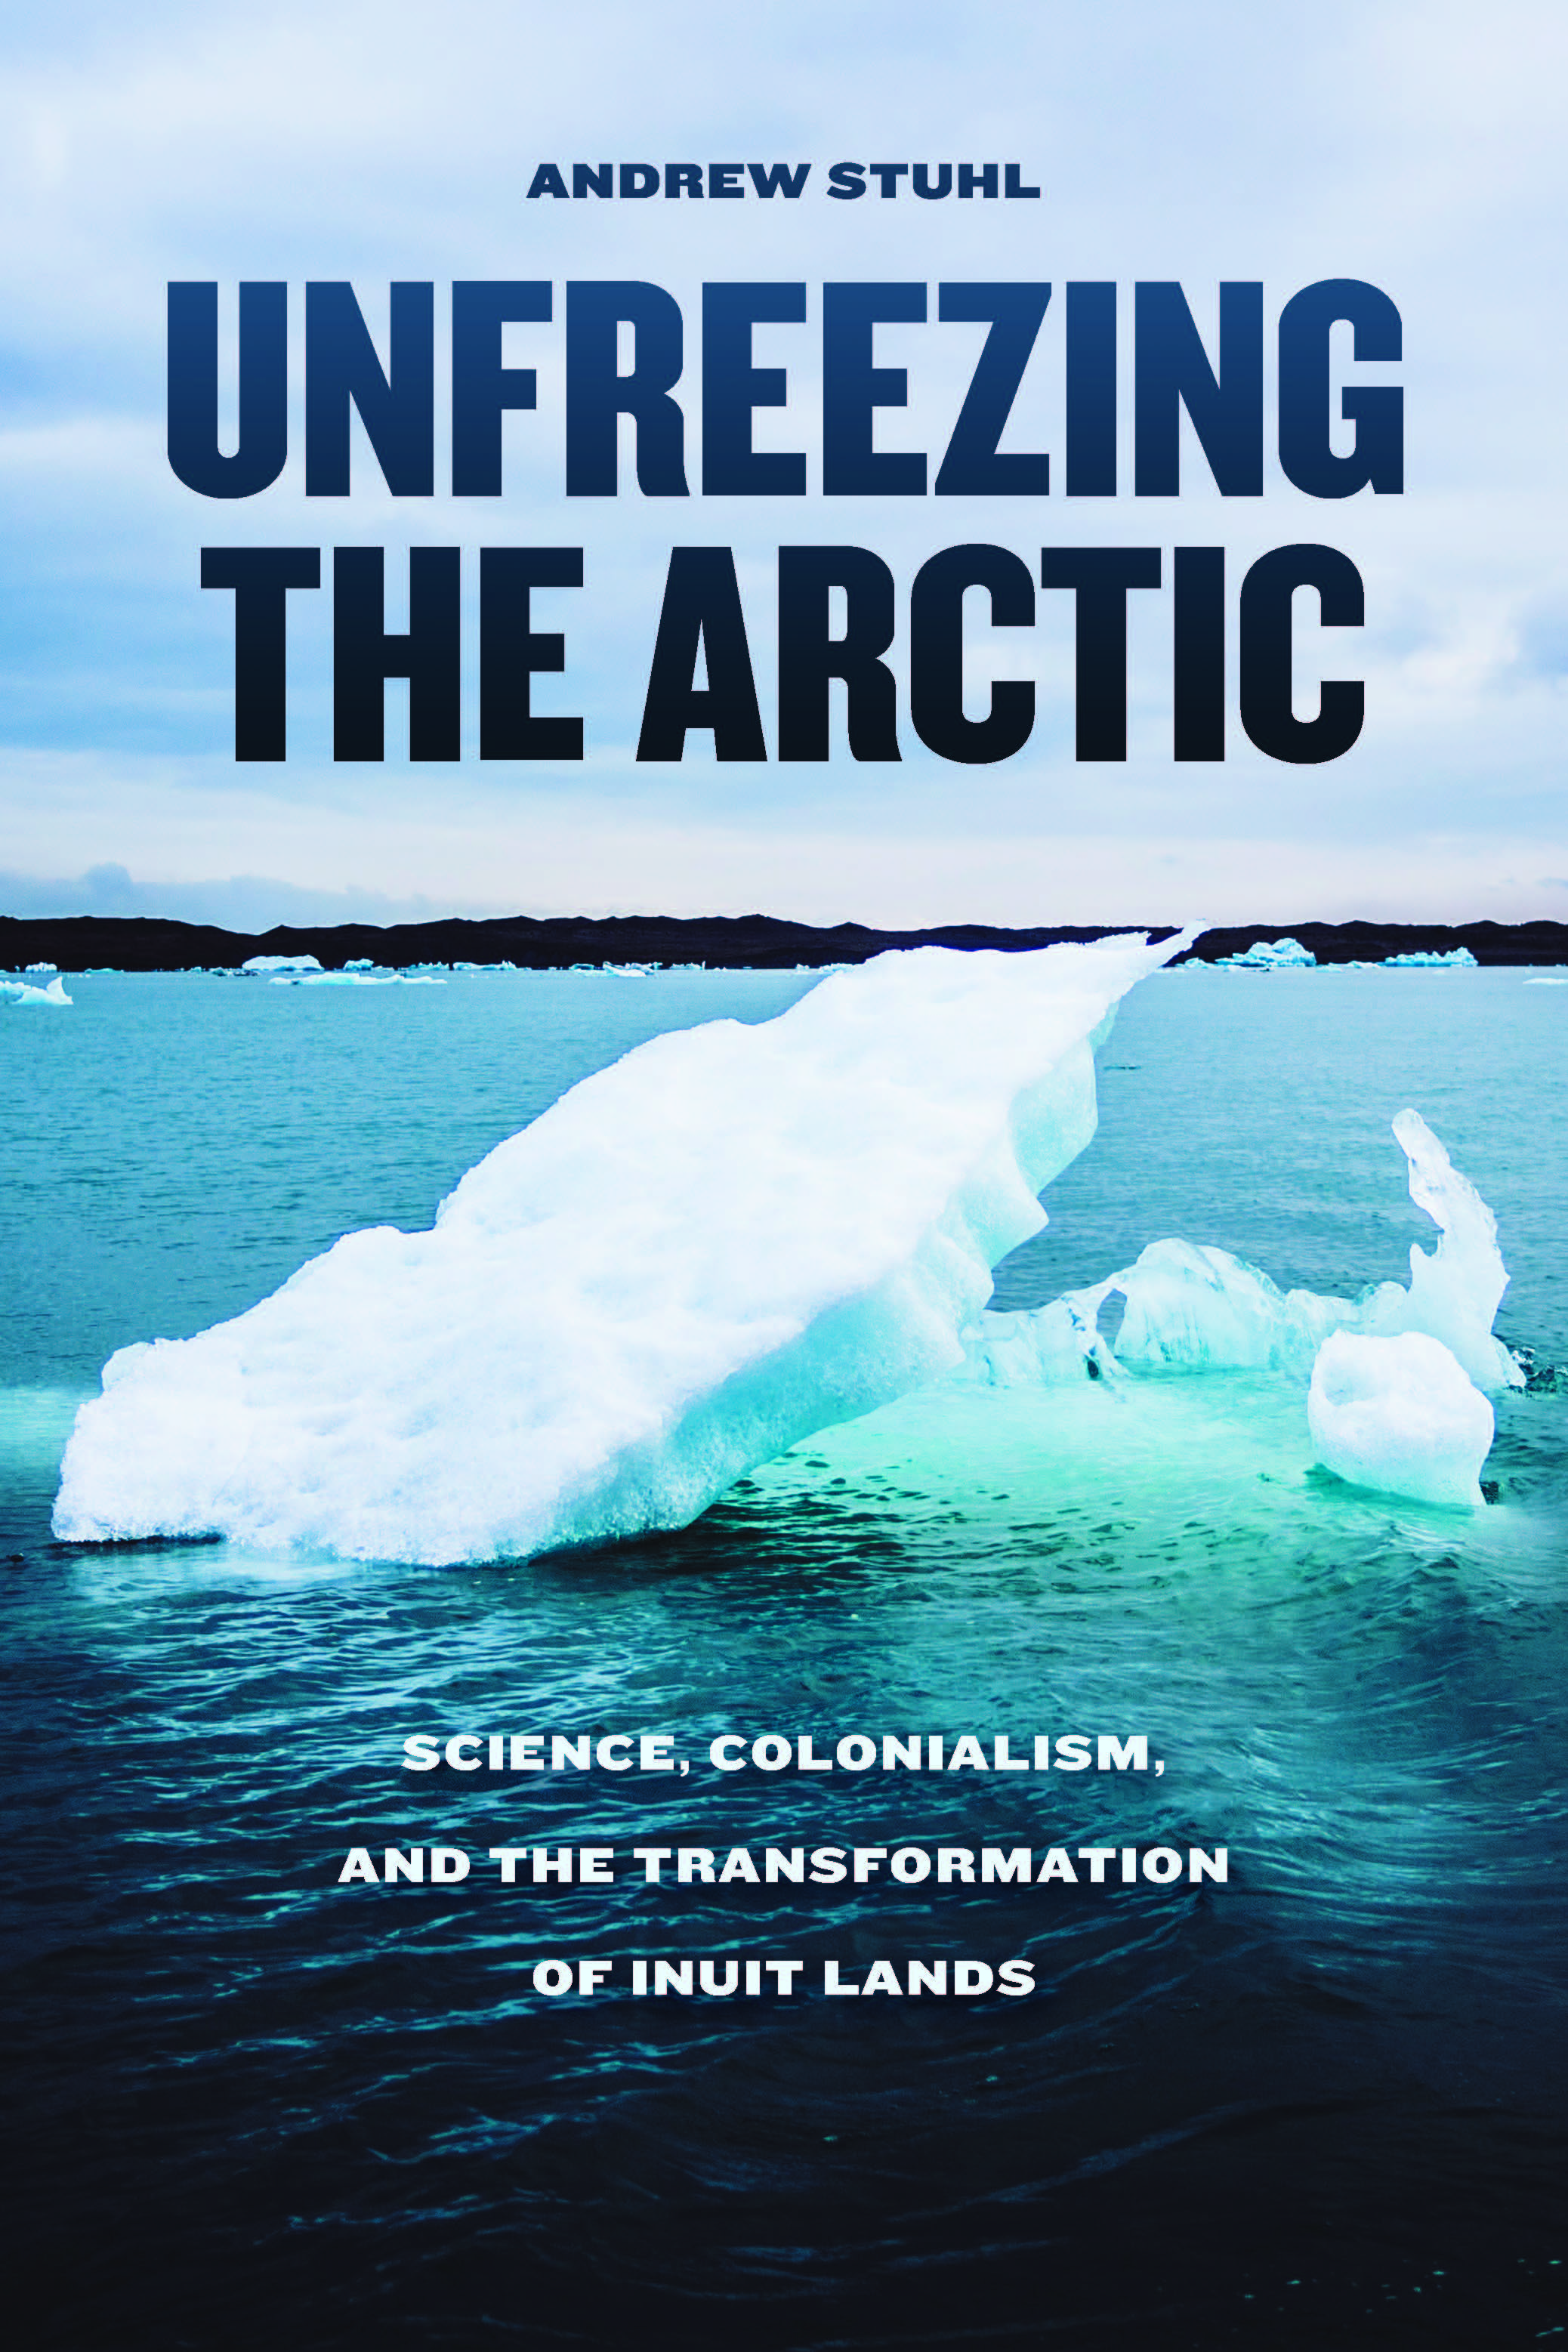 Unfreezing the Arctic: Science, Colonialism, and the Transformation of Inuit Lands